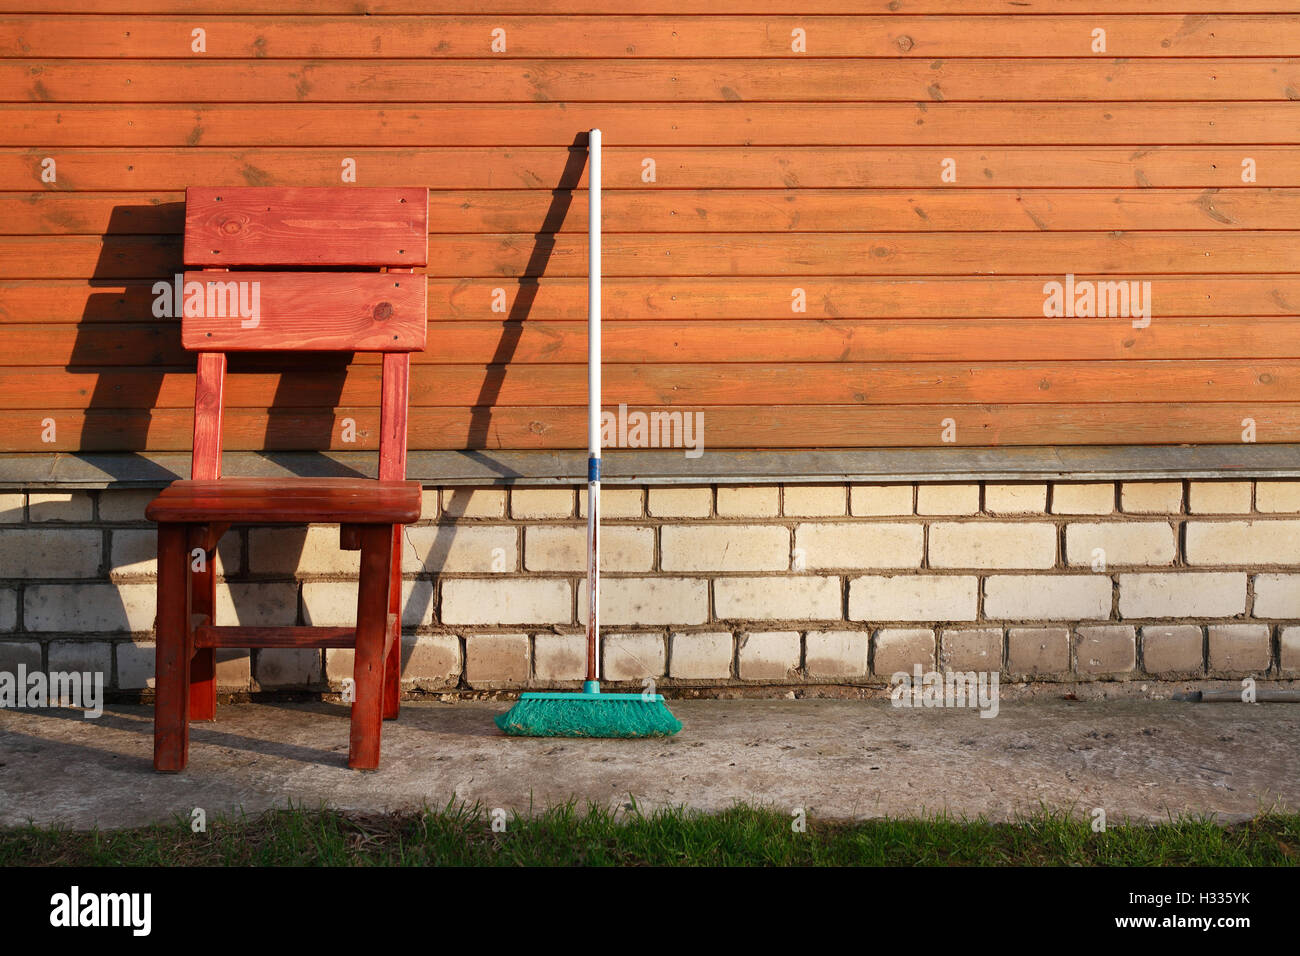 Mop And Chair - Stock Image